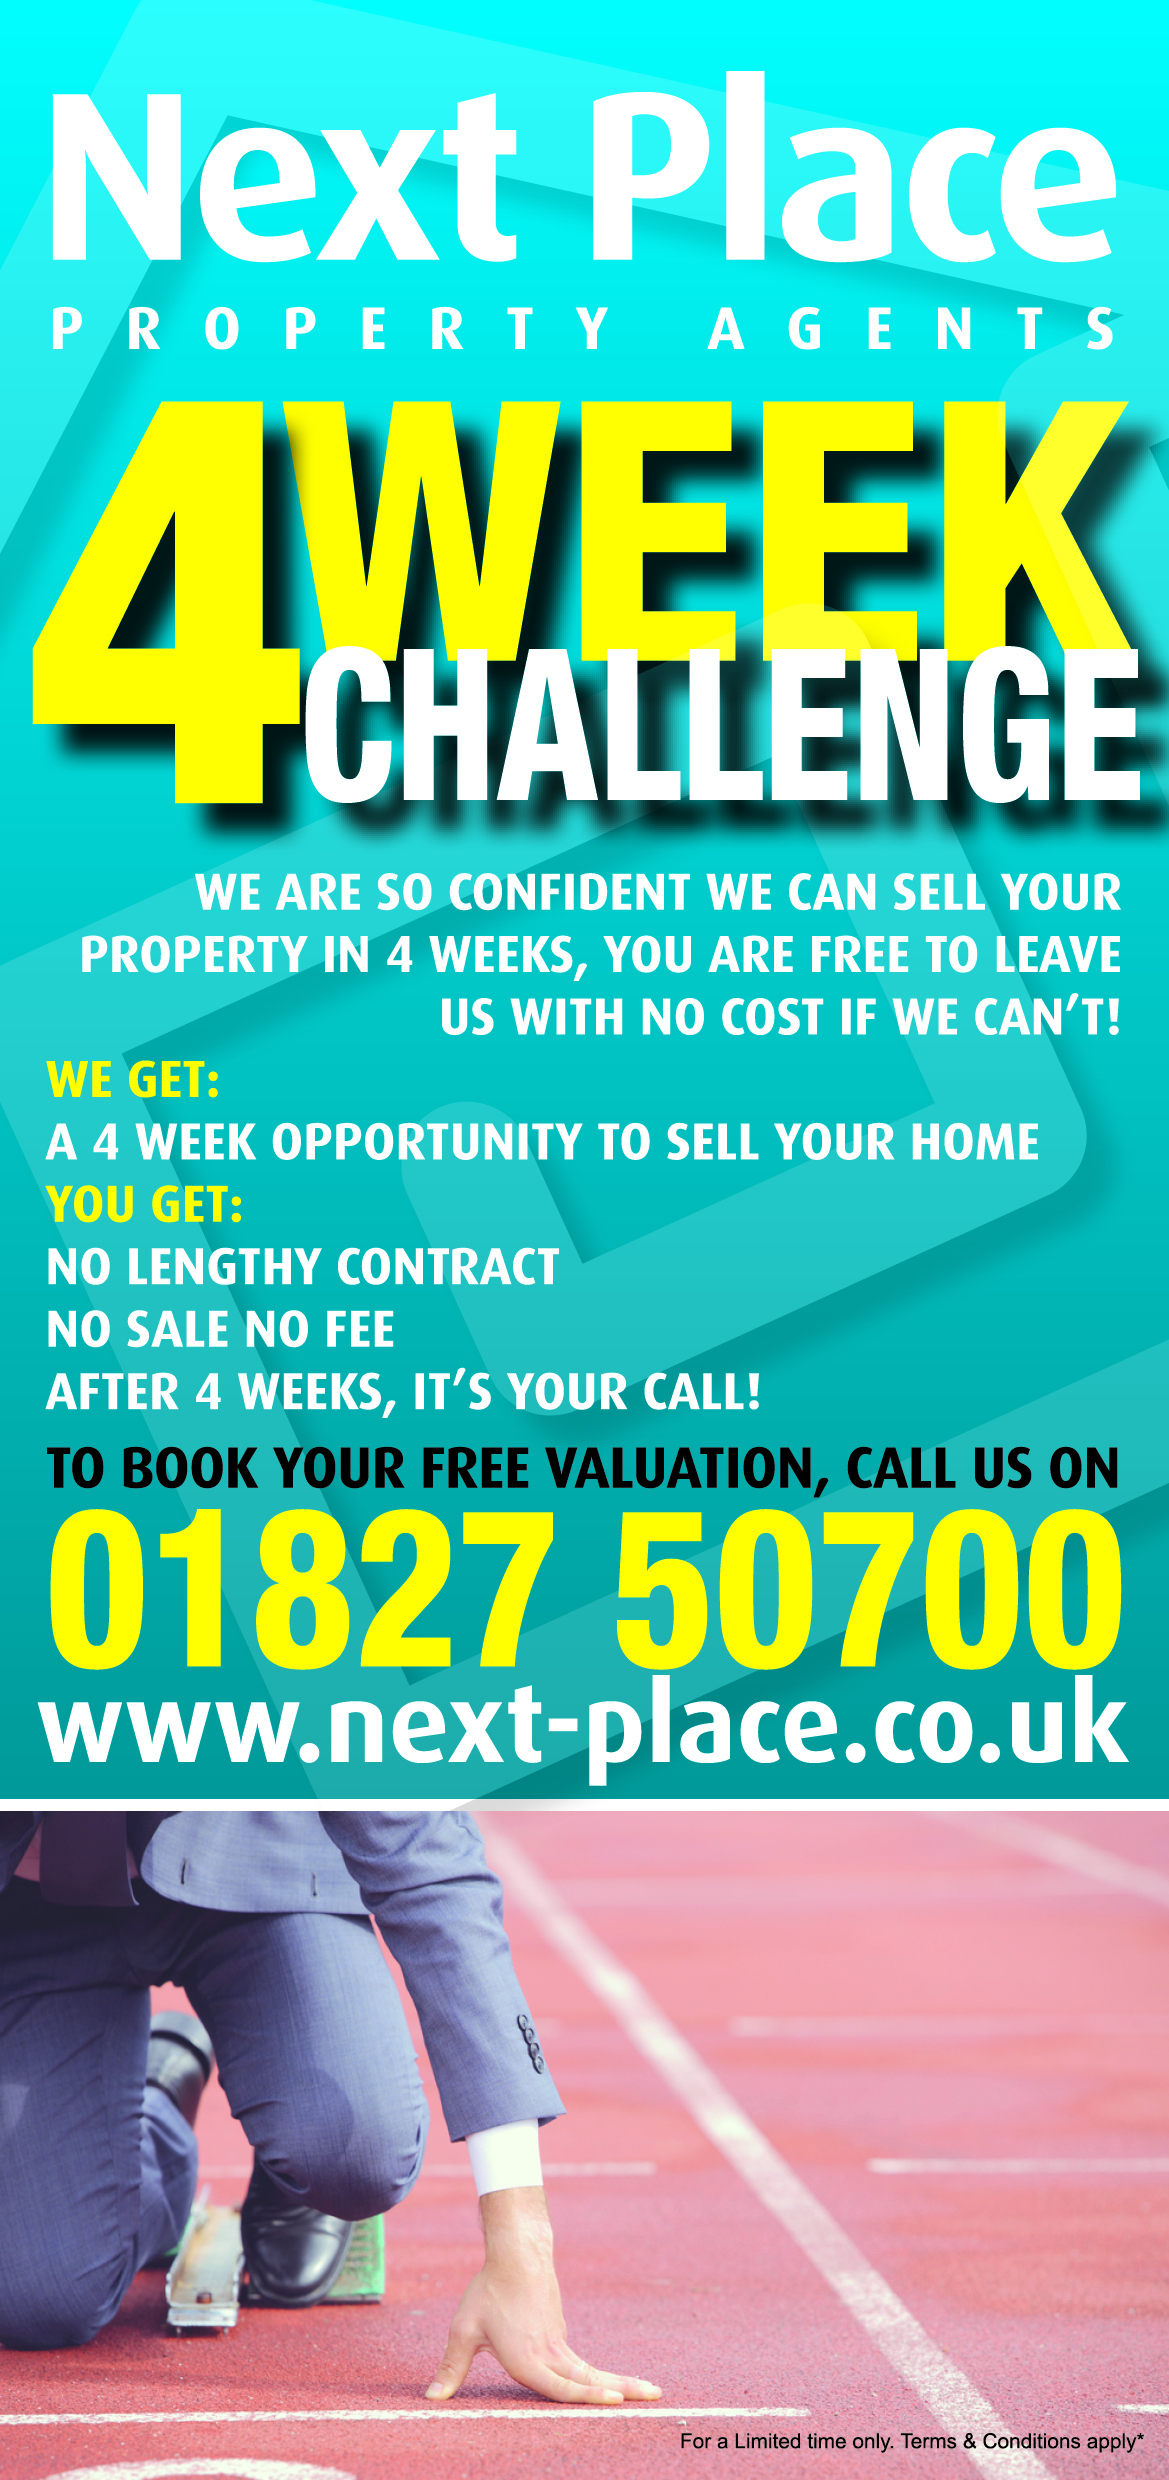 We will sell your property in 4 weeks